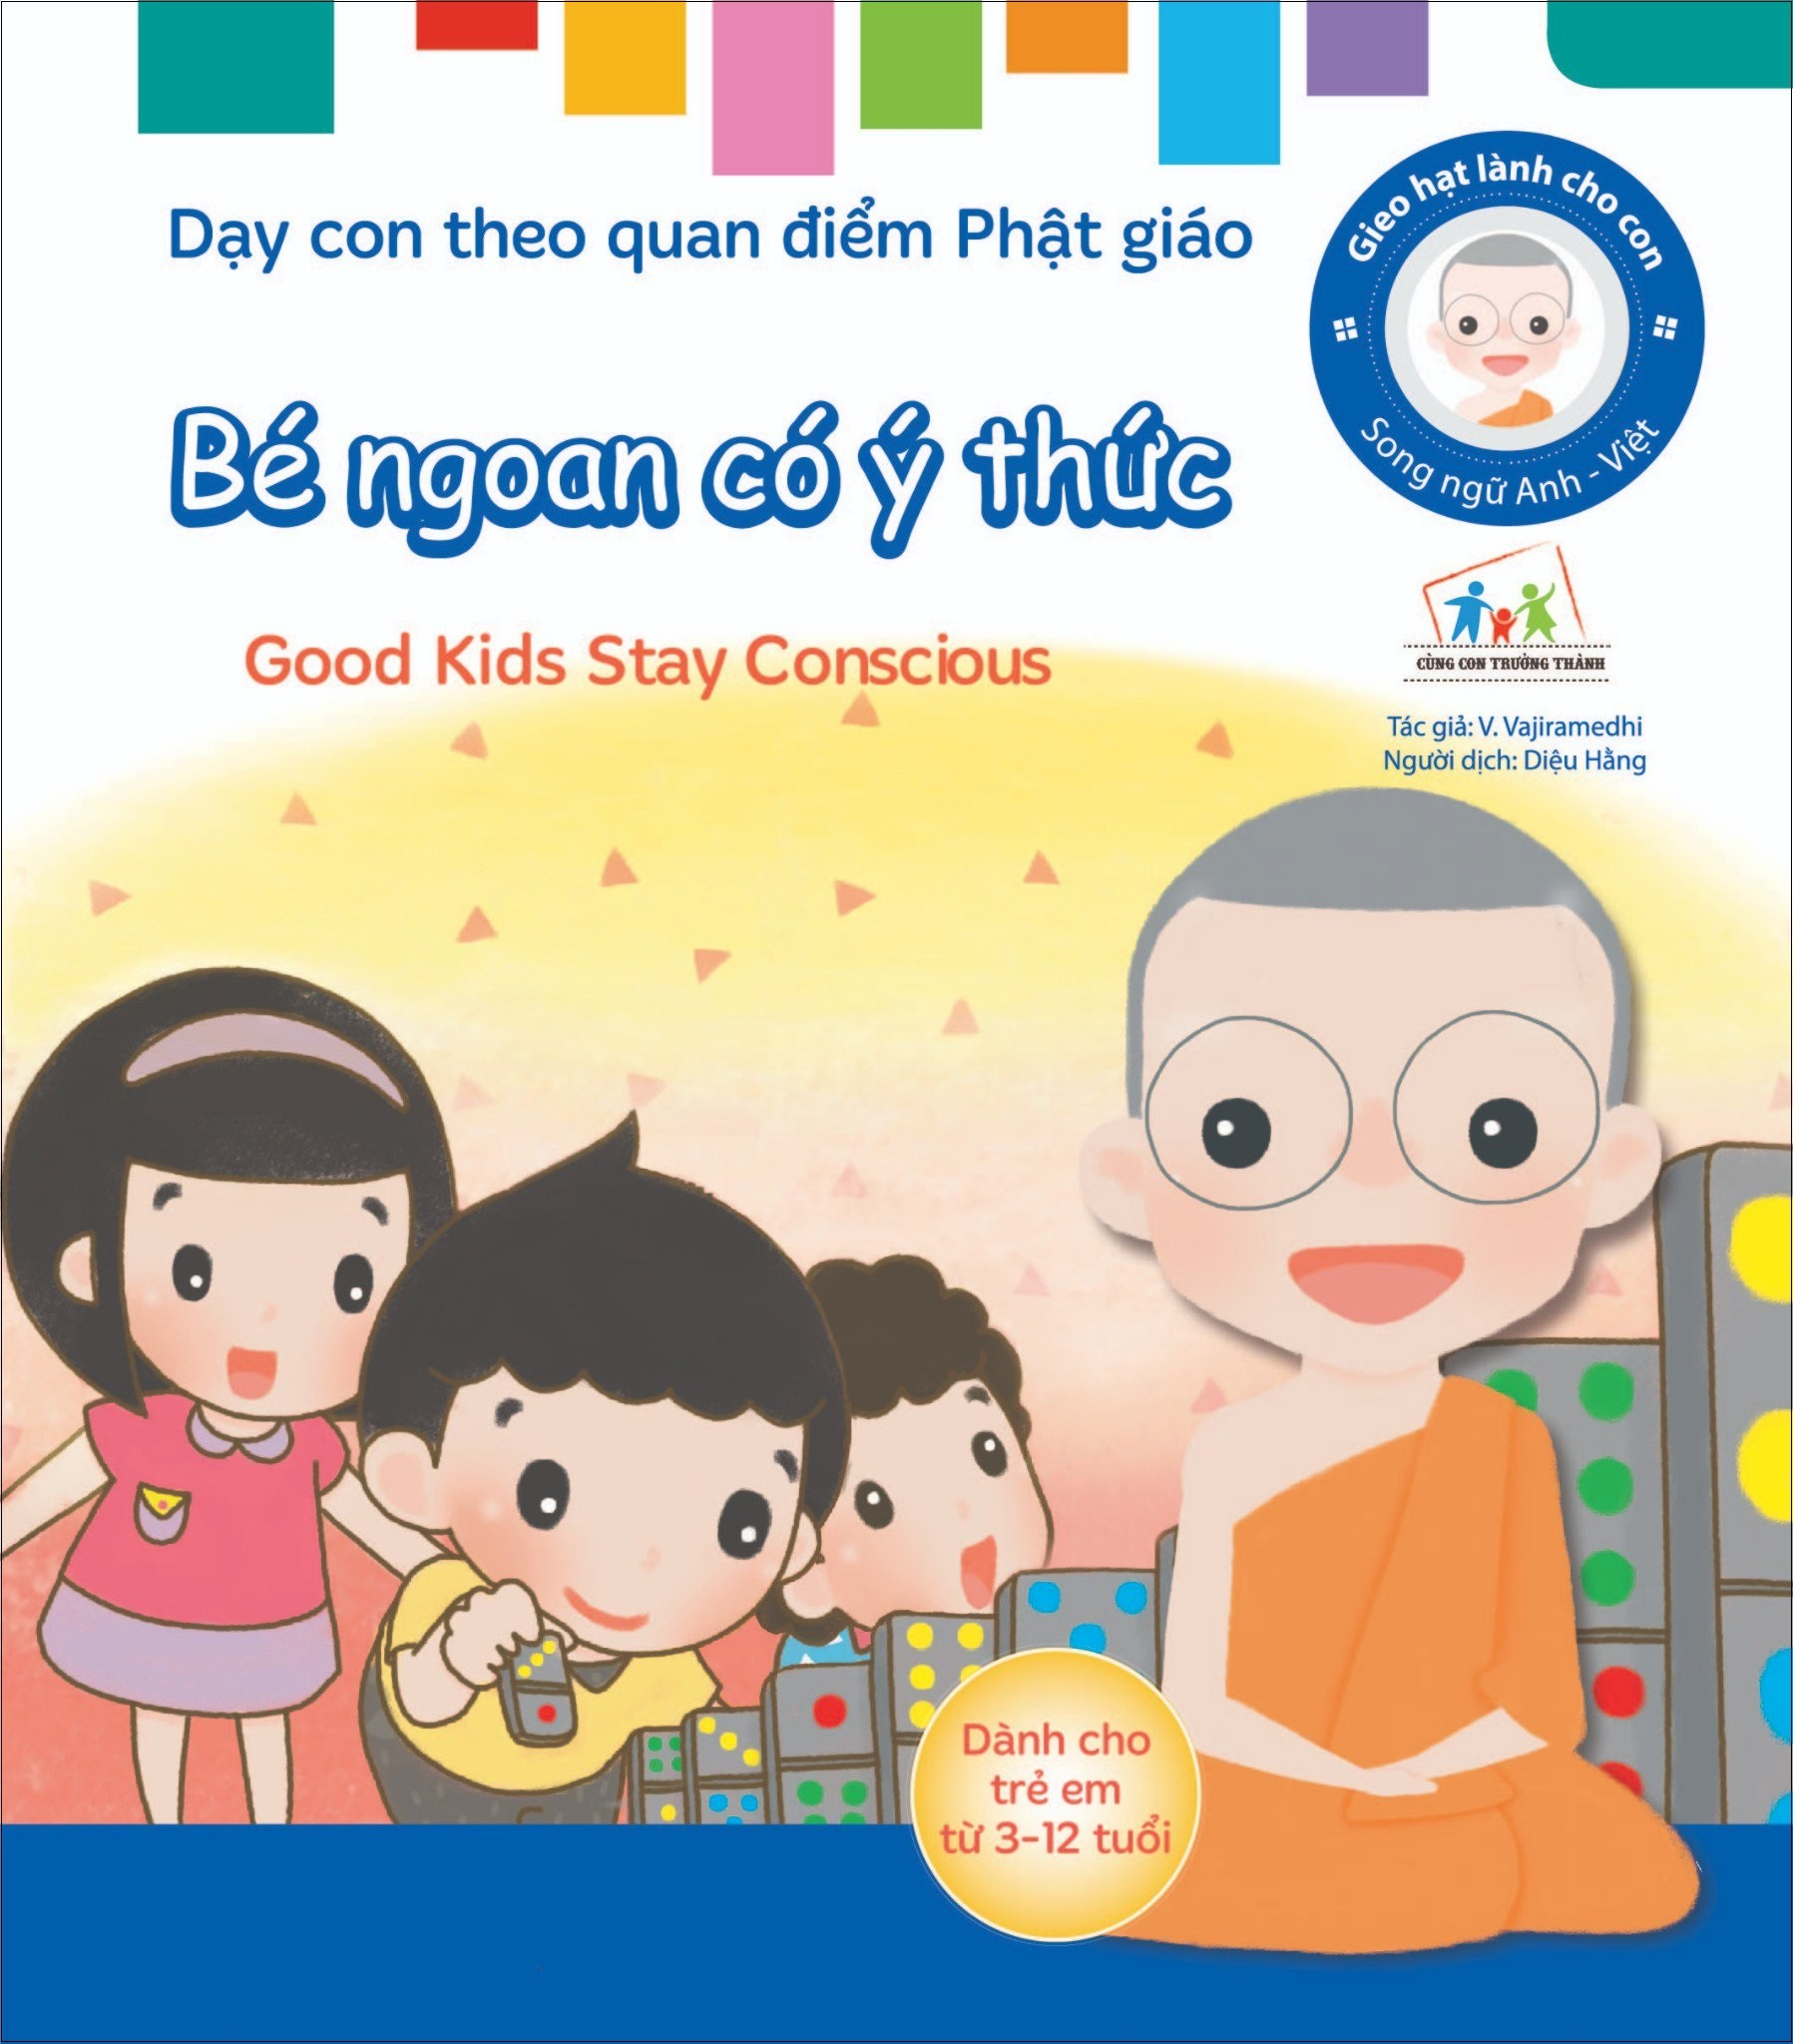 gieo hat lanh cho con - day con theo quan diem phat giao - good kids stay conscious - be ngoan co y thuc (song ngu anh viet)